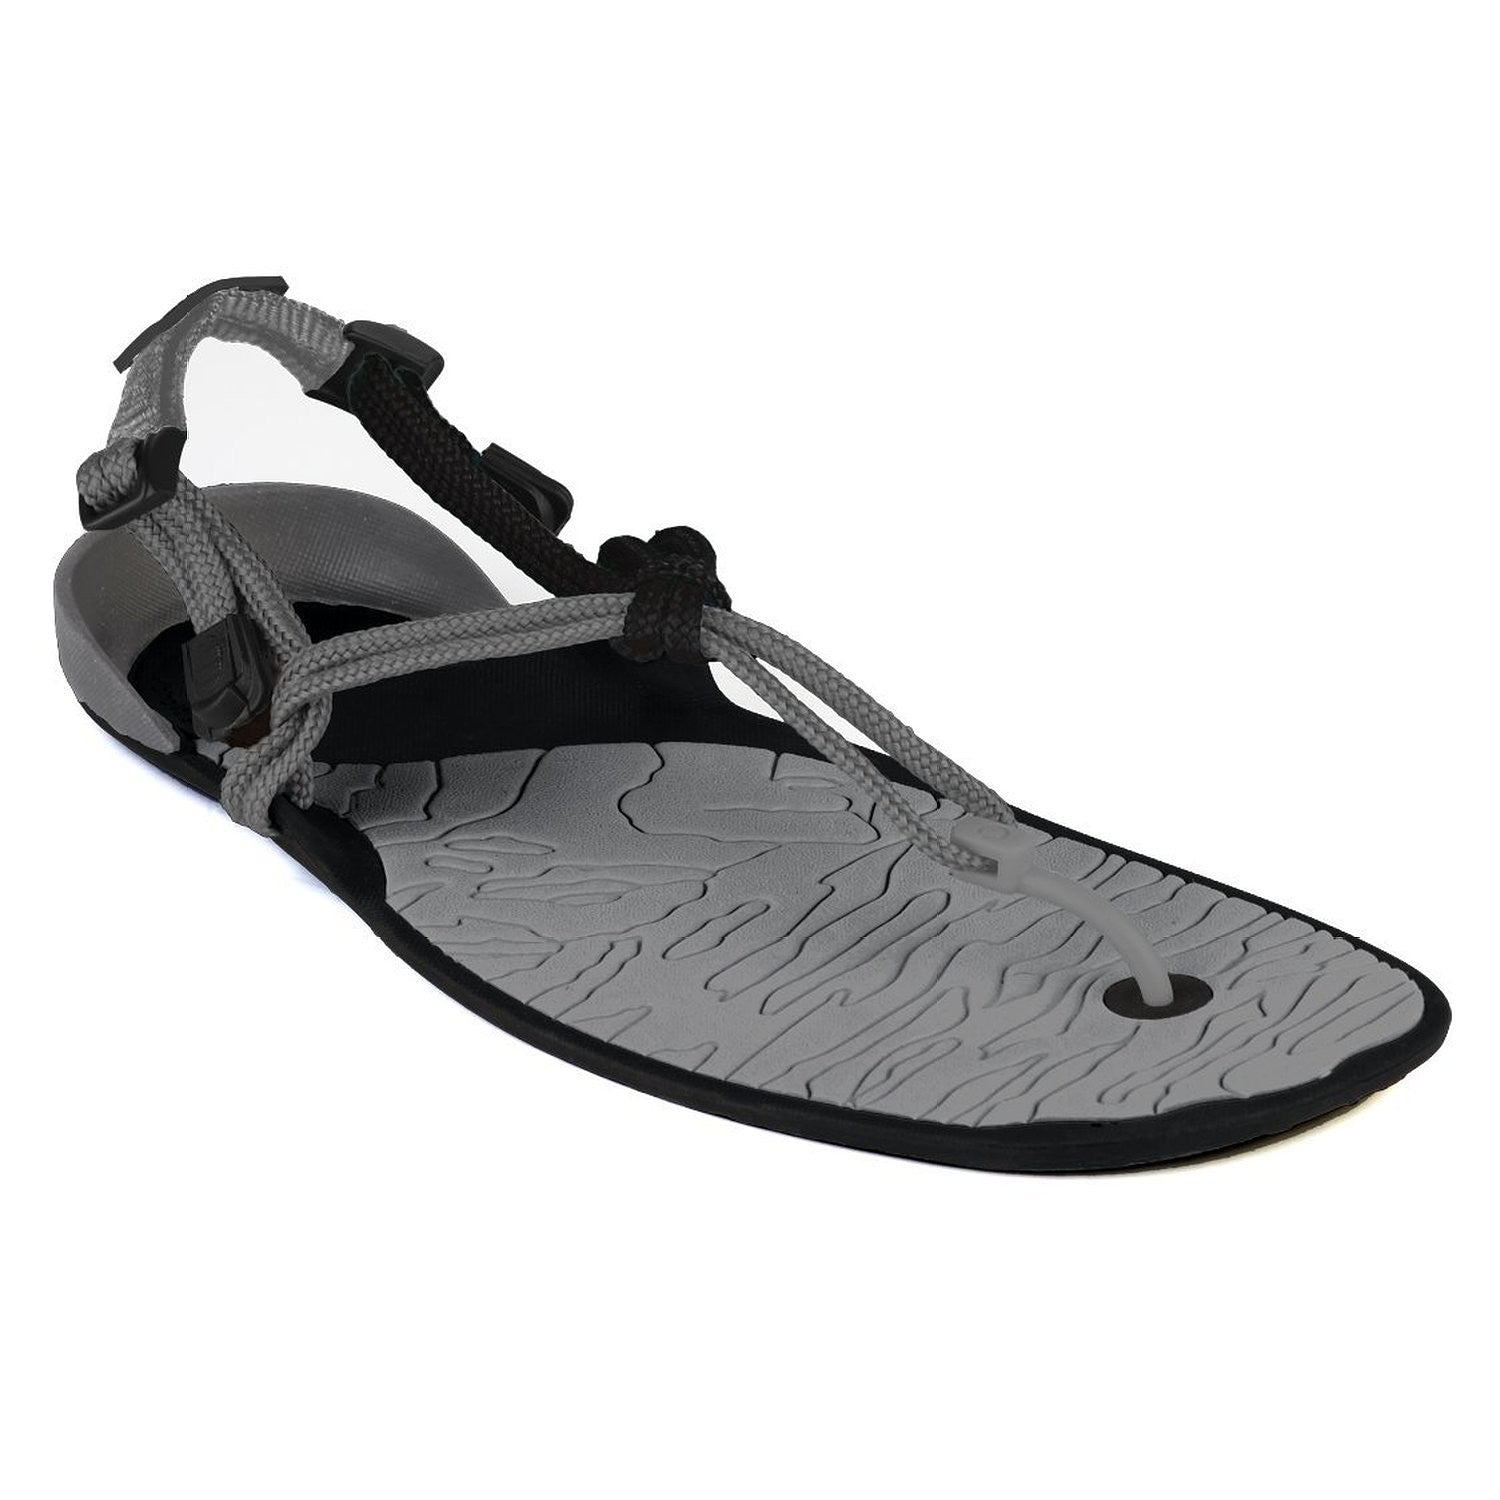 ab8c1823c0c7d Xero Shoes Amuri Cloud – Men's and Women's Barefoot Sandals - Run ...